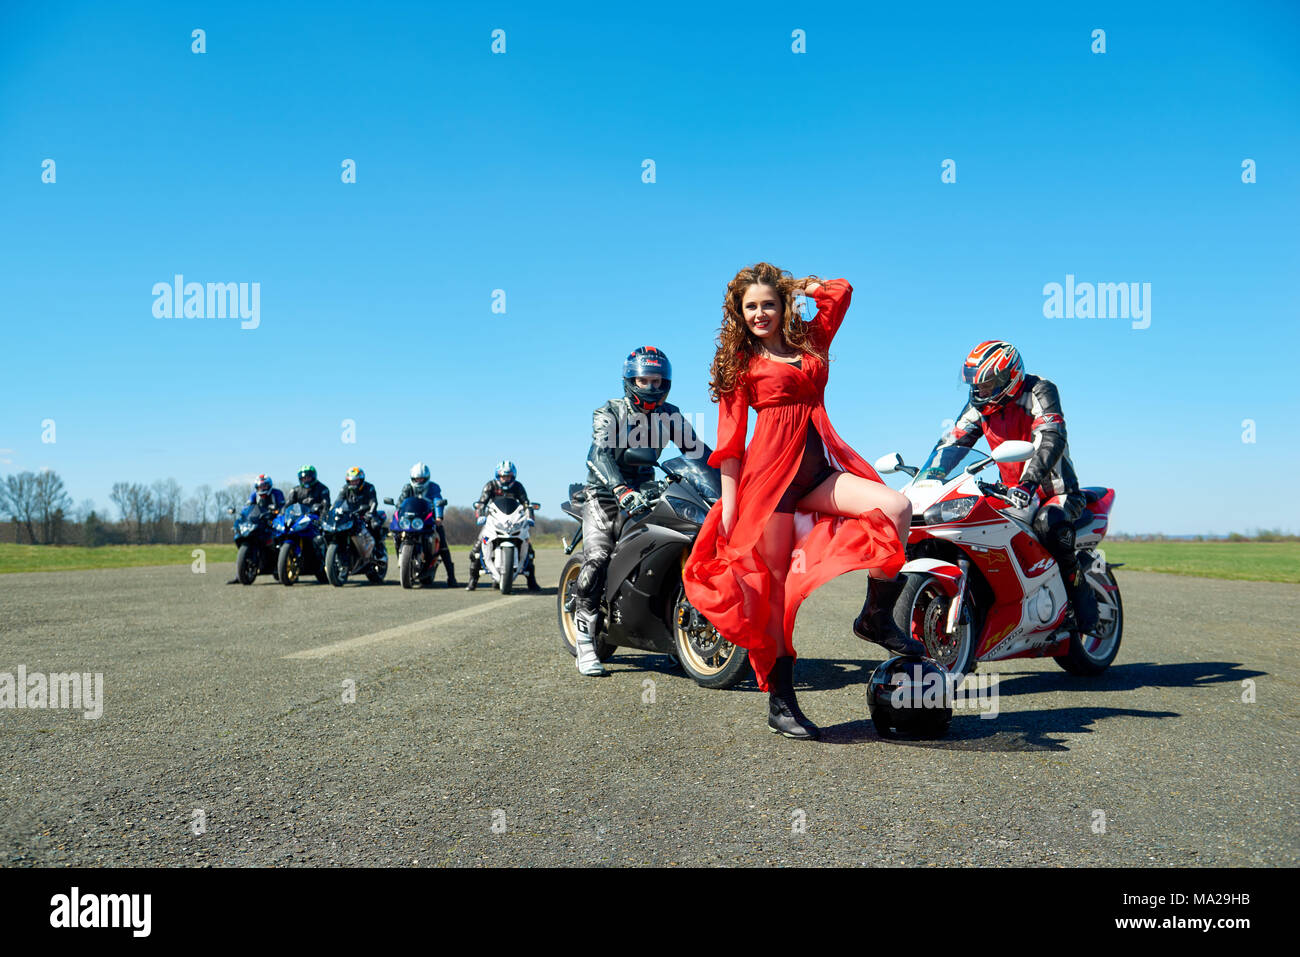 Kiev, Ukraine - 29 March 2017: Photo of young beatiful lady wearing red dispersing dress and posing in front of seven bikers, sitting on their motorcycles on blue sky background. - Stock Image